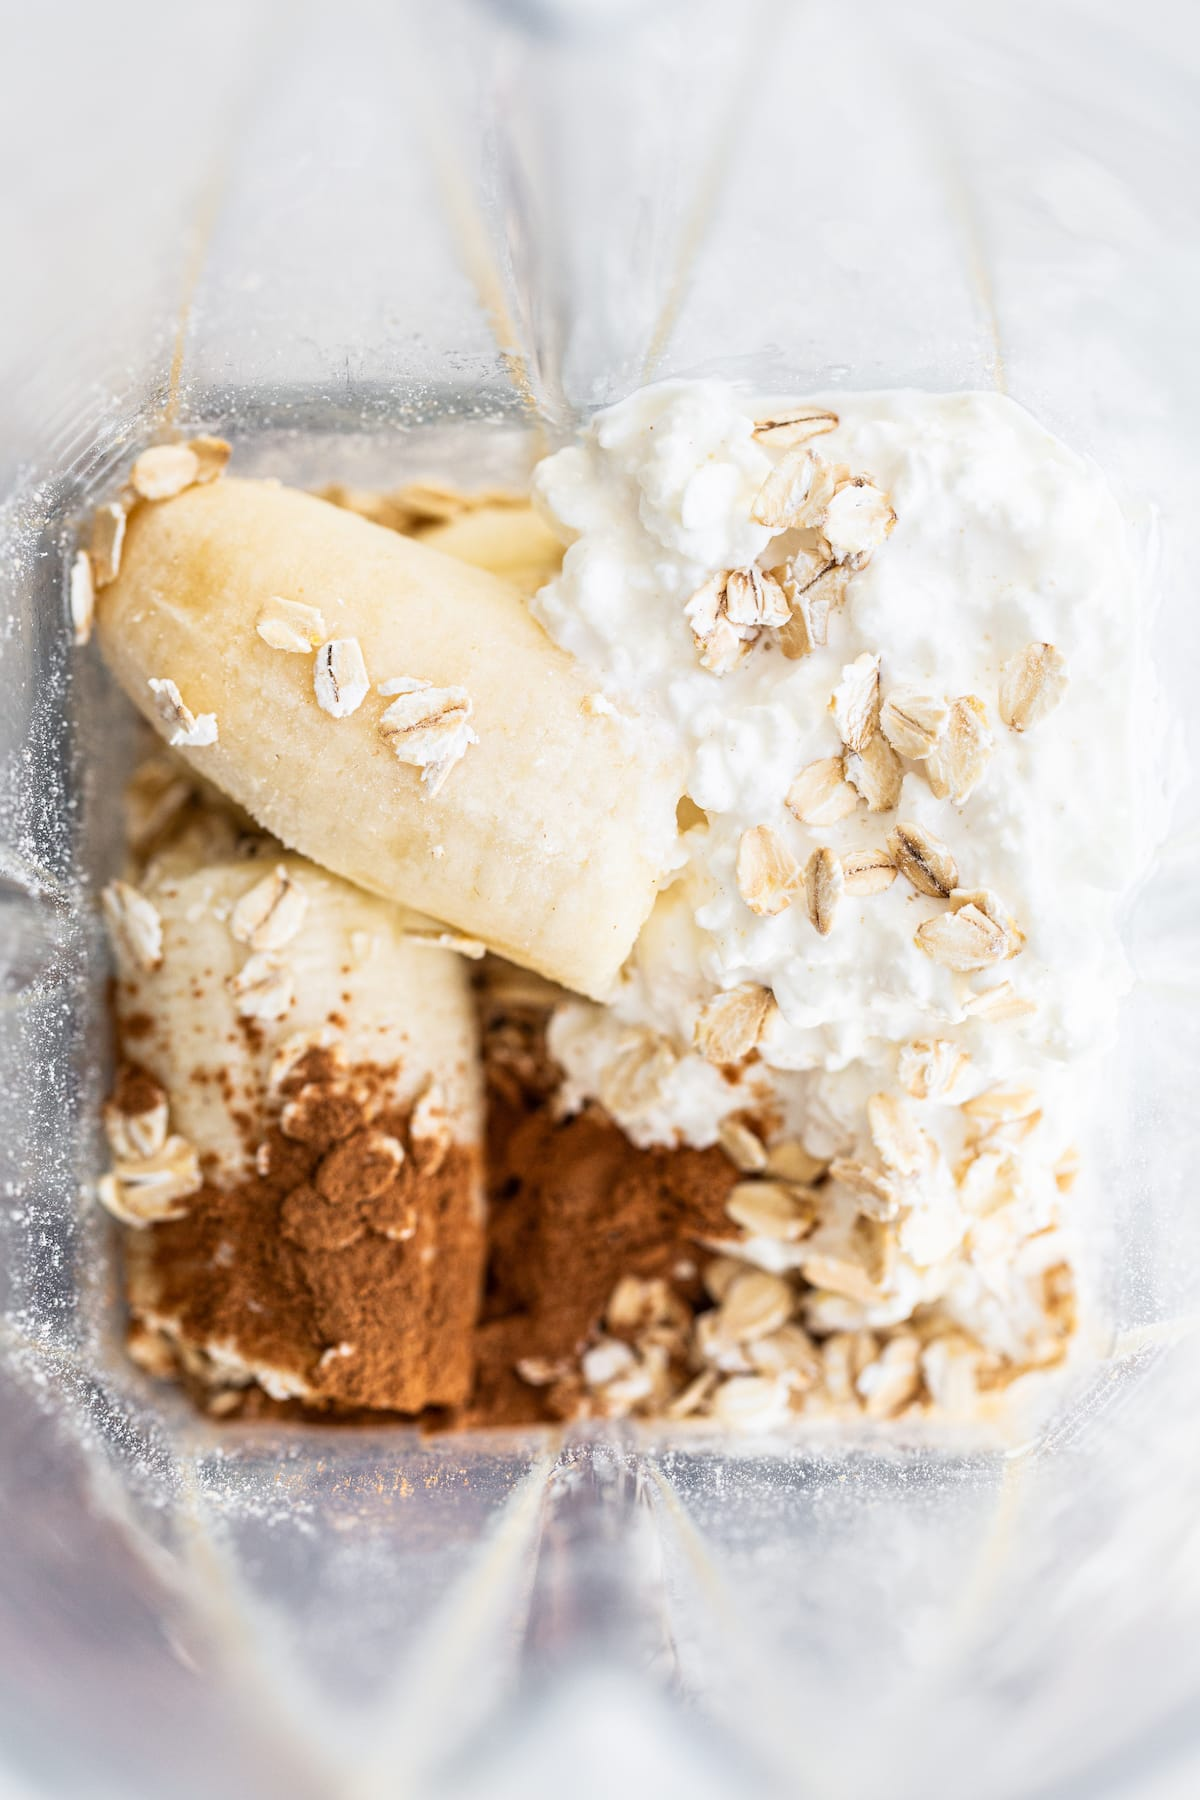 Cinnamon, banana, cottage cheese and oats in a blender.